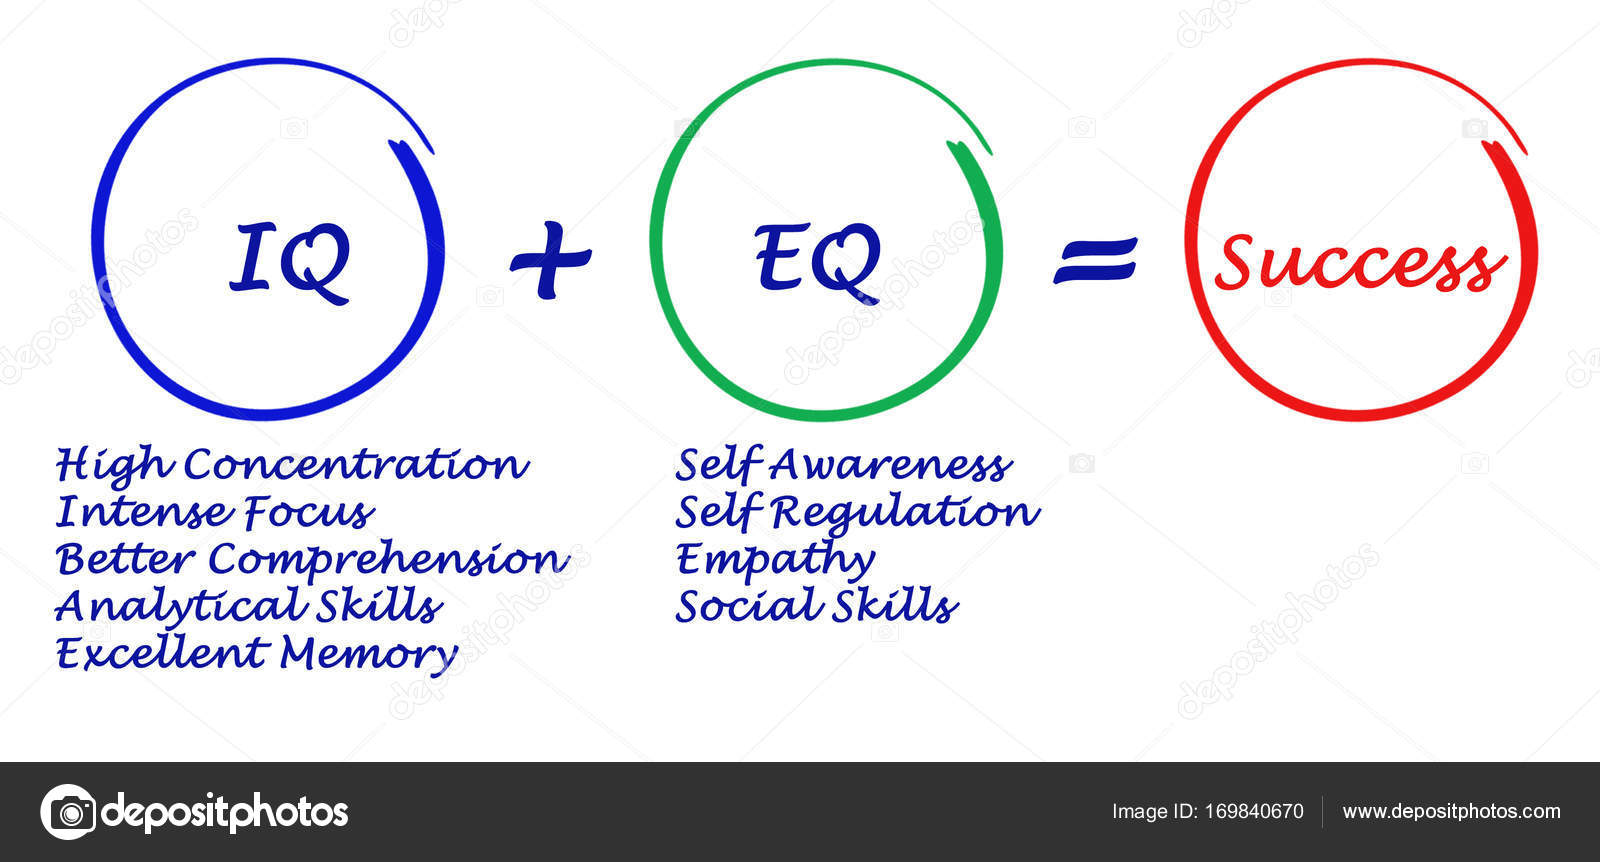 Combination of IQ and+ EQ give...